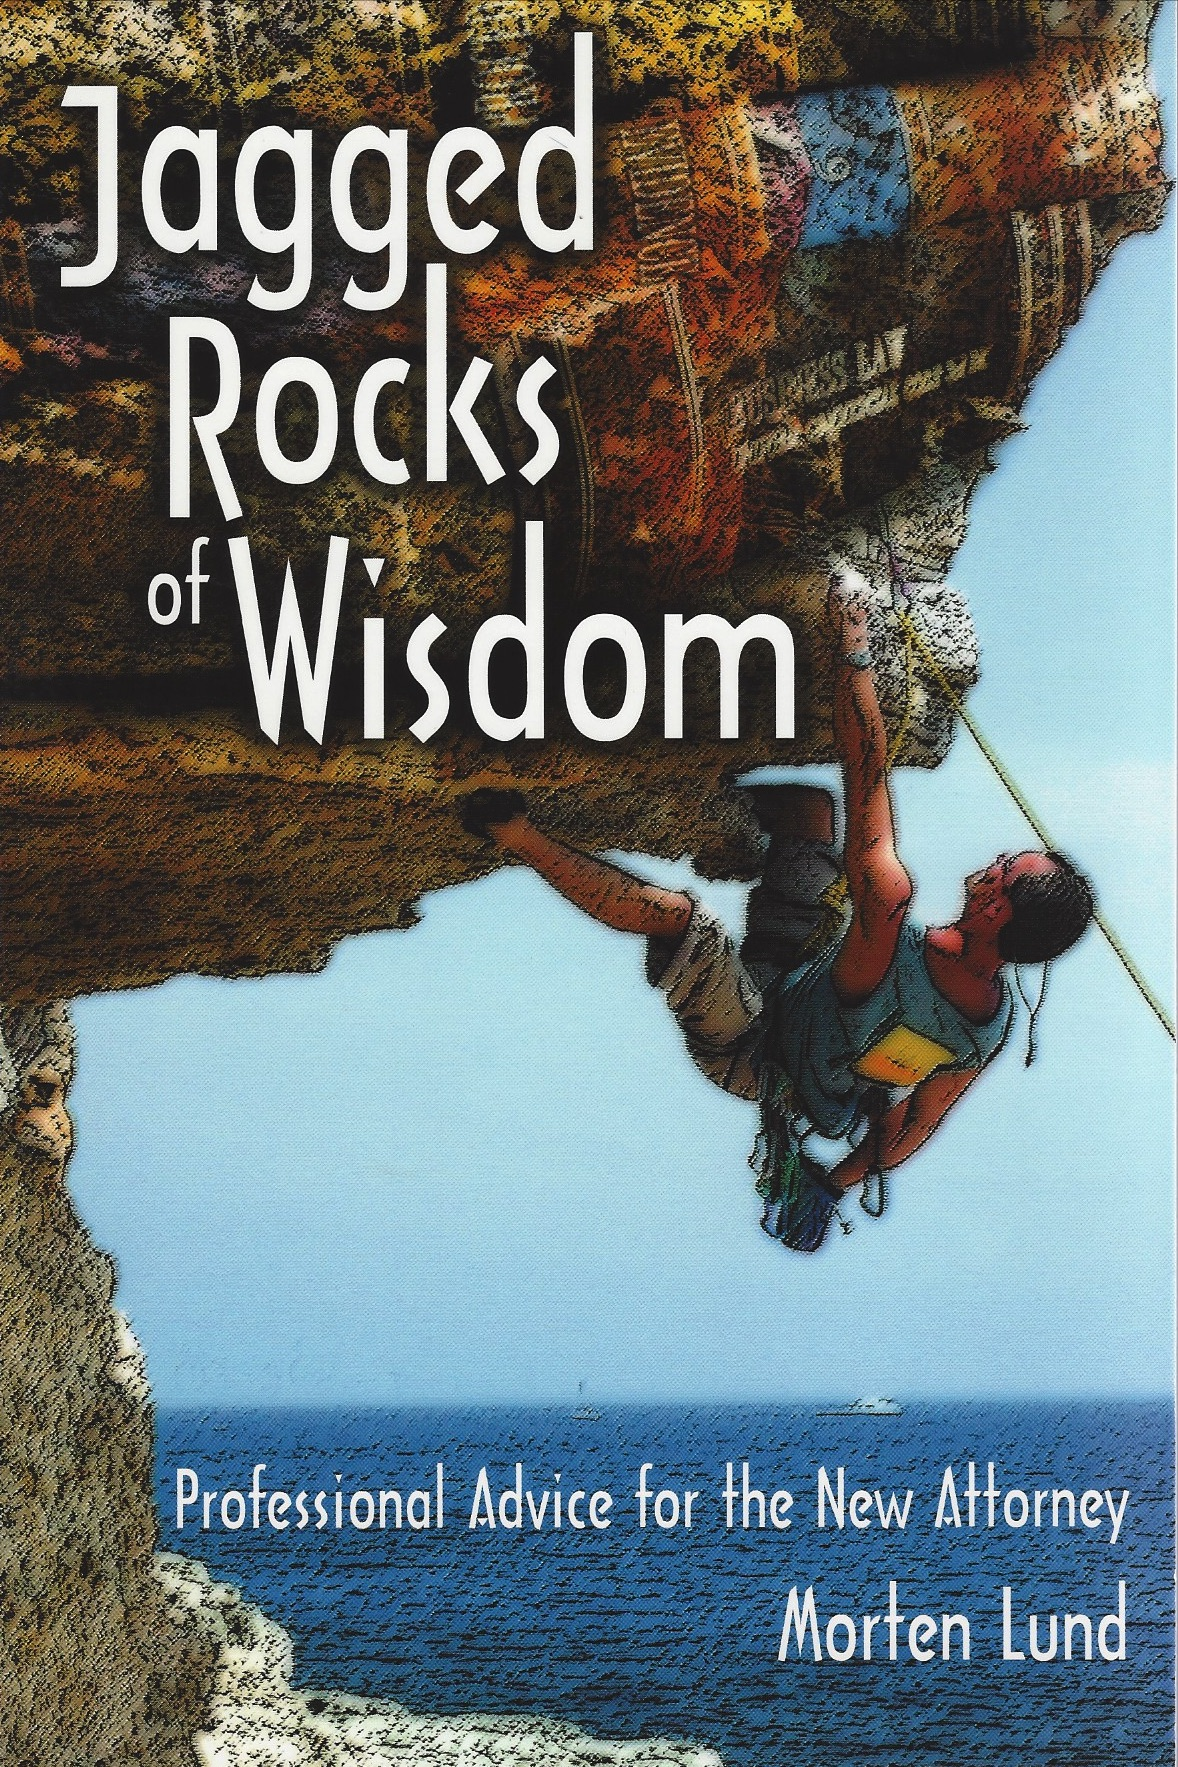 Jagged Rocks of Wisdom